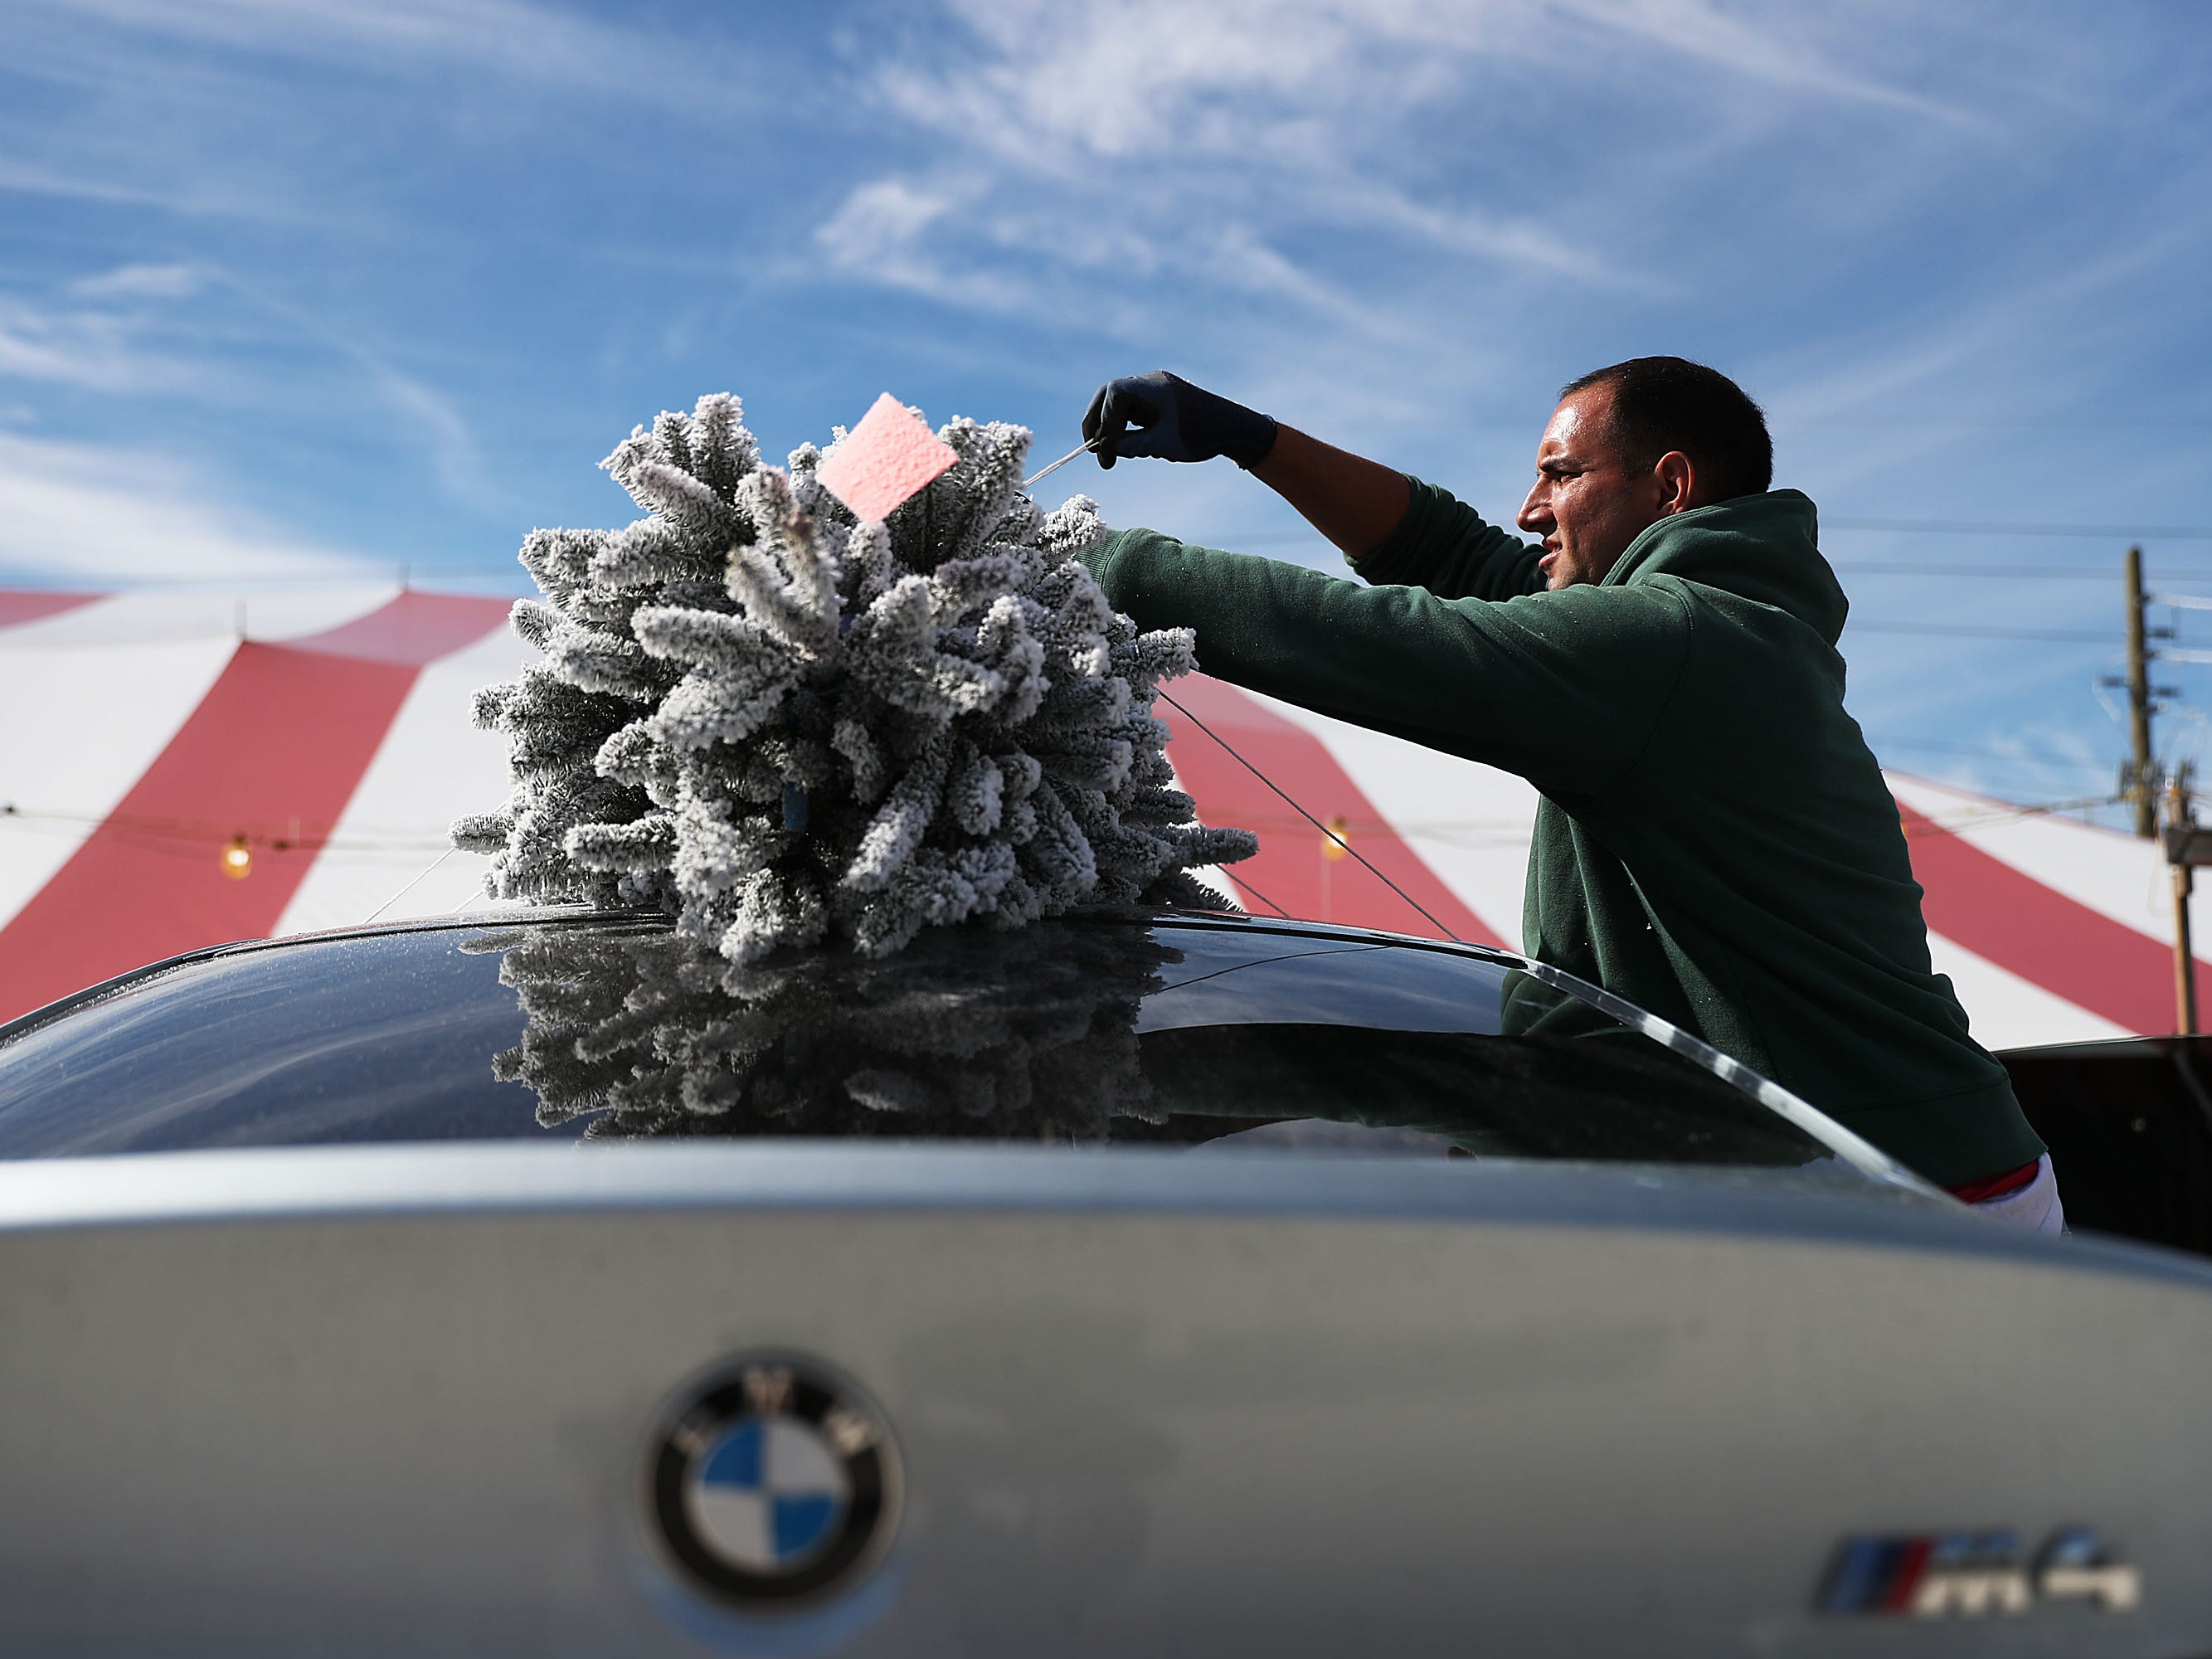 Alex Echezurio ties a Christmas tree to the top of a vehicle as he helps people buying Christmas tree at a Holiday Sale Christmas Tree lot  on November 29, 2018 in Miami, Florida.  Reports indicate that the U.S. is suffering from a  Christmas tree shortage nationwide which is causing prices of trees to go up.